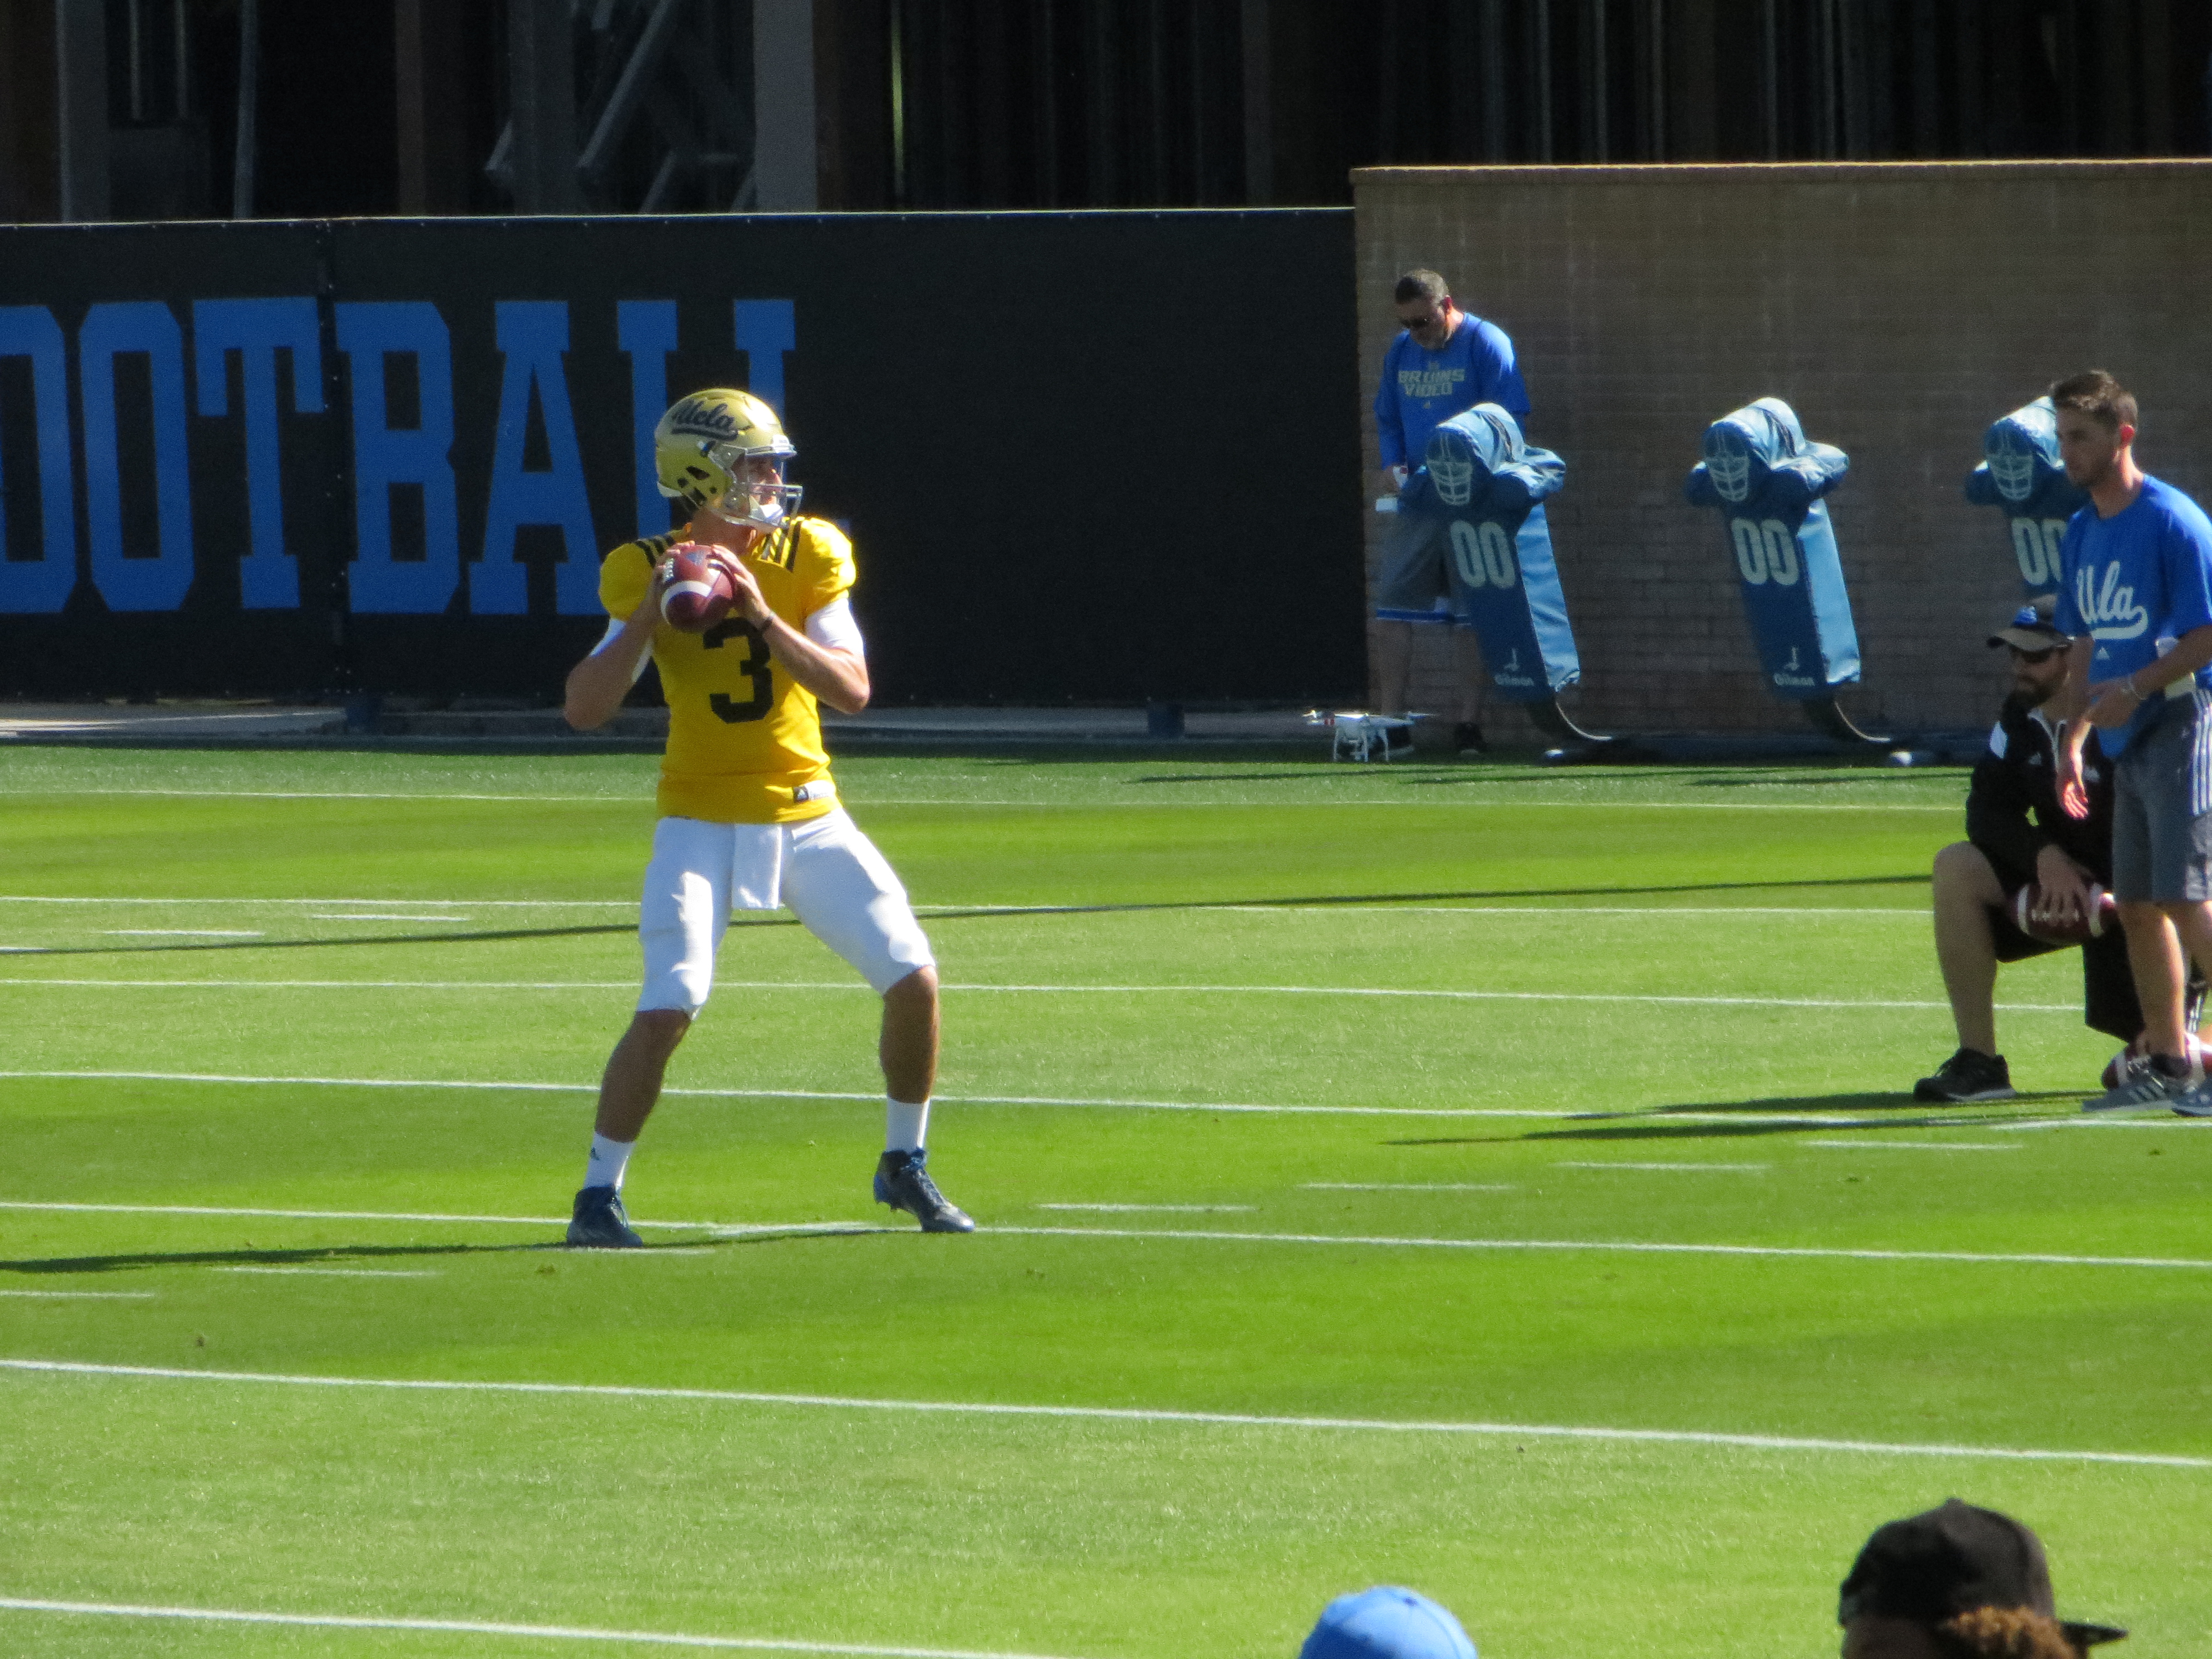 Bruin fans, this is your new starting QB.